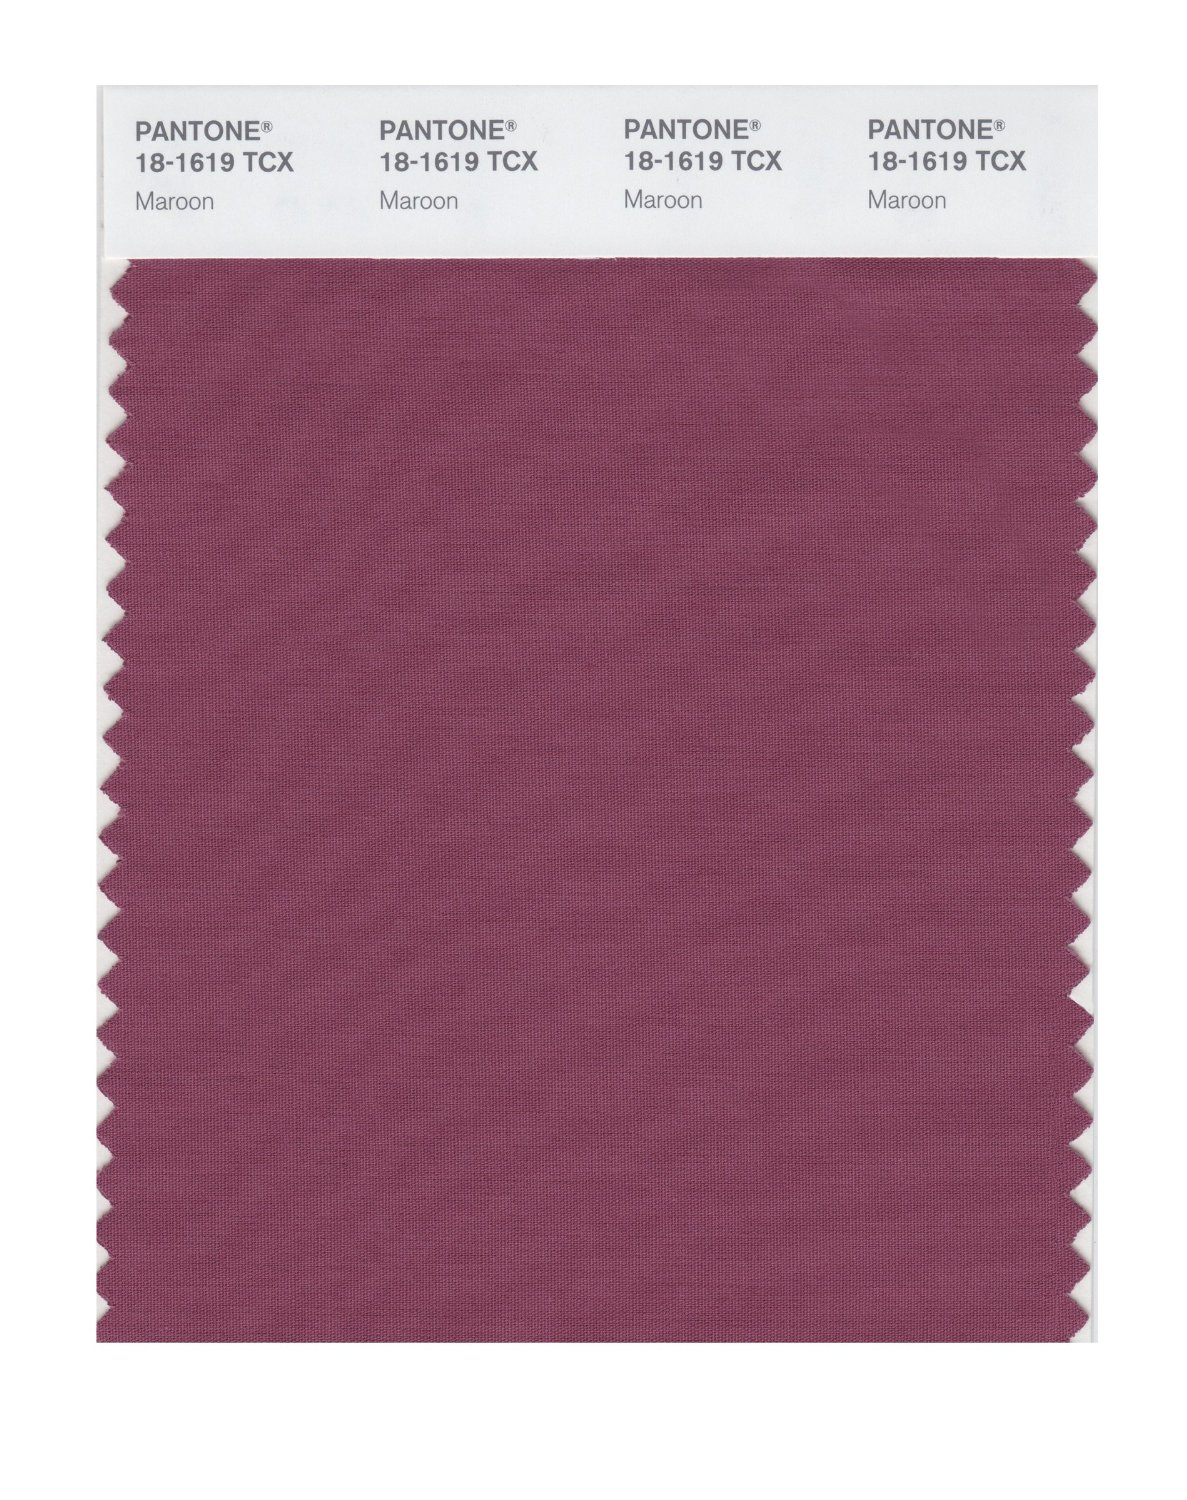 Pantone Smart Swatch 18-1619 Maroon